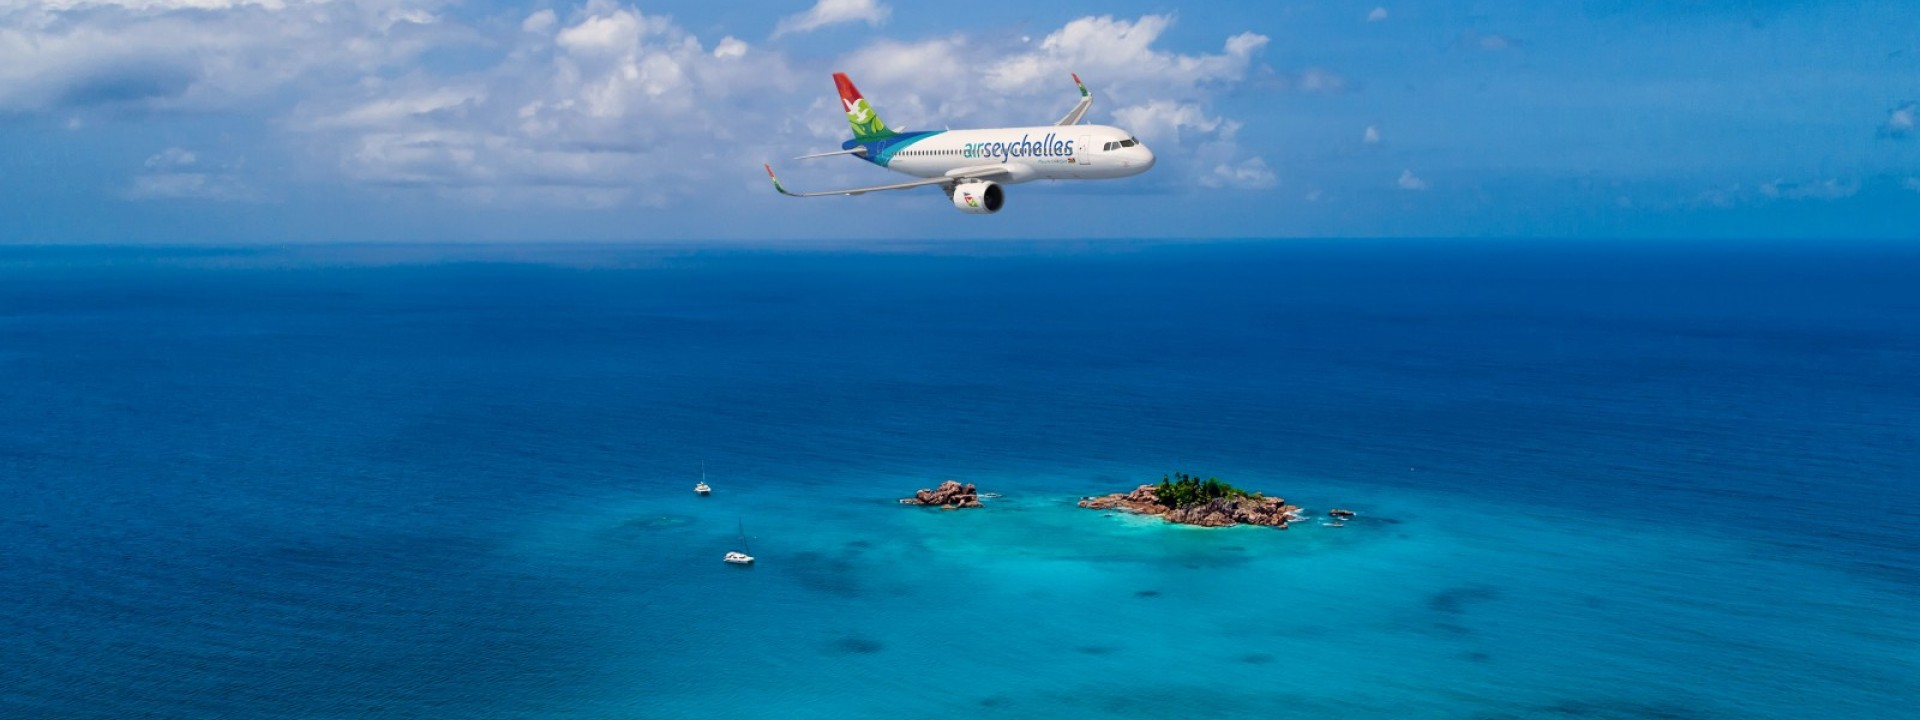 Air Seychelles We'll be back stay safe COVID-19 flights